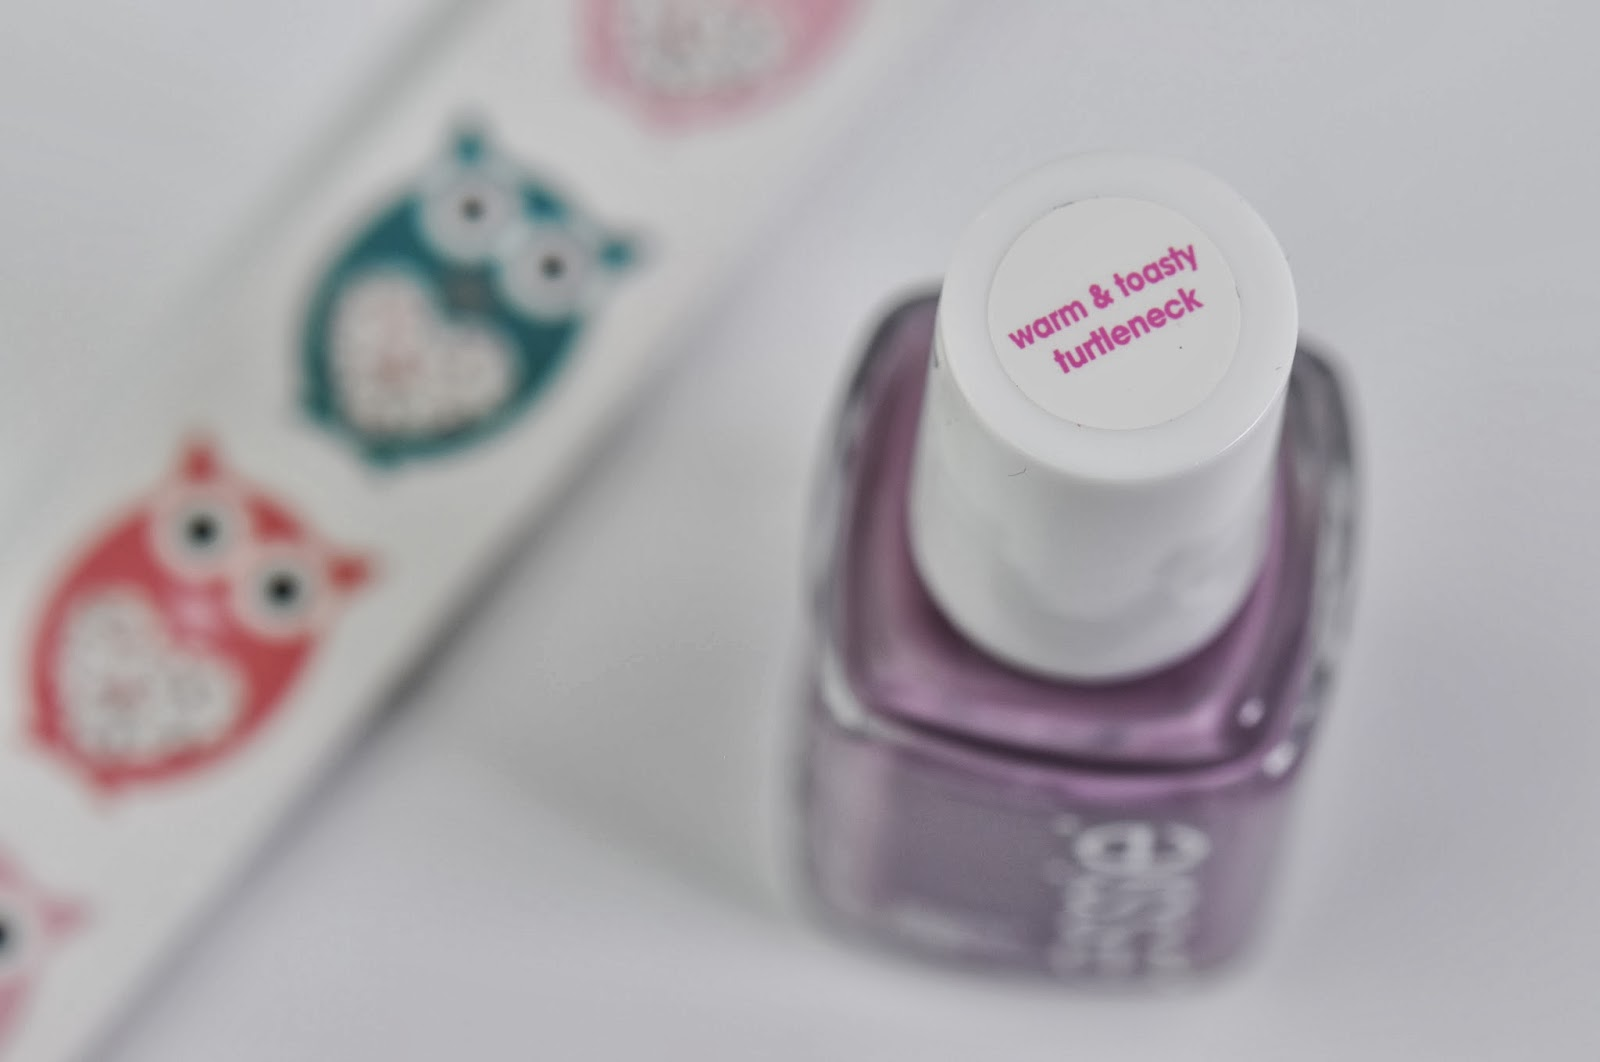 NOTD: Essie Warm & Toasty Turtleneck review & swatch